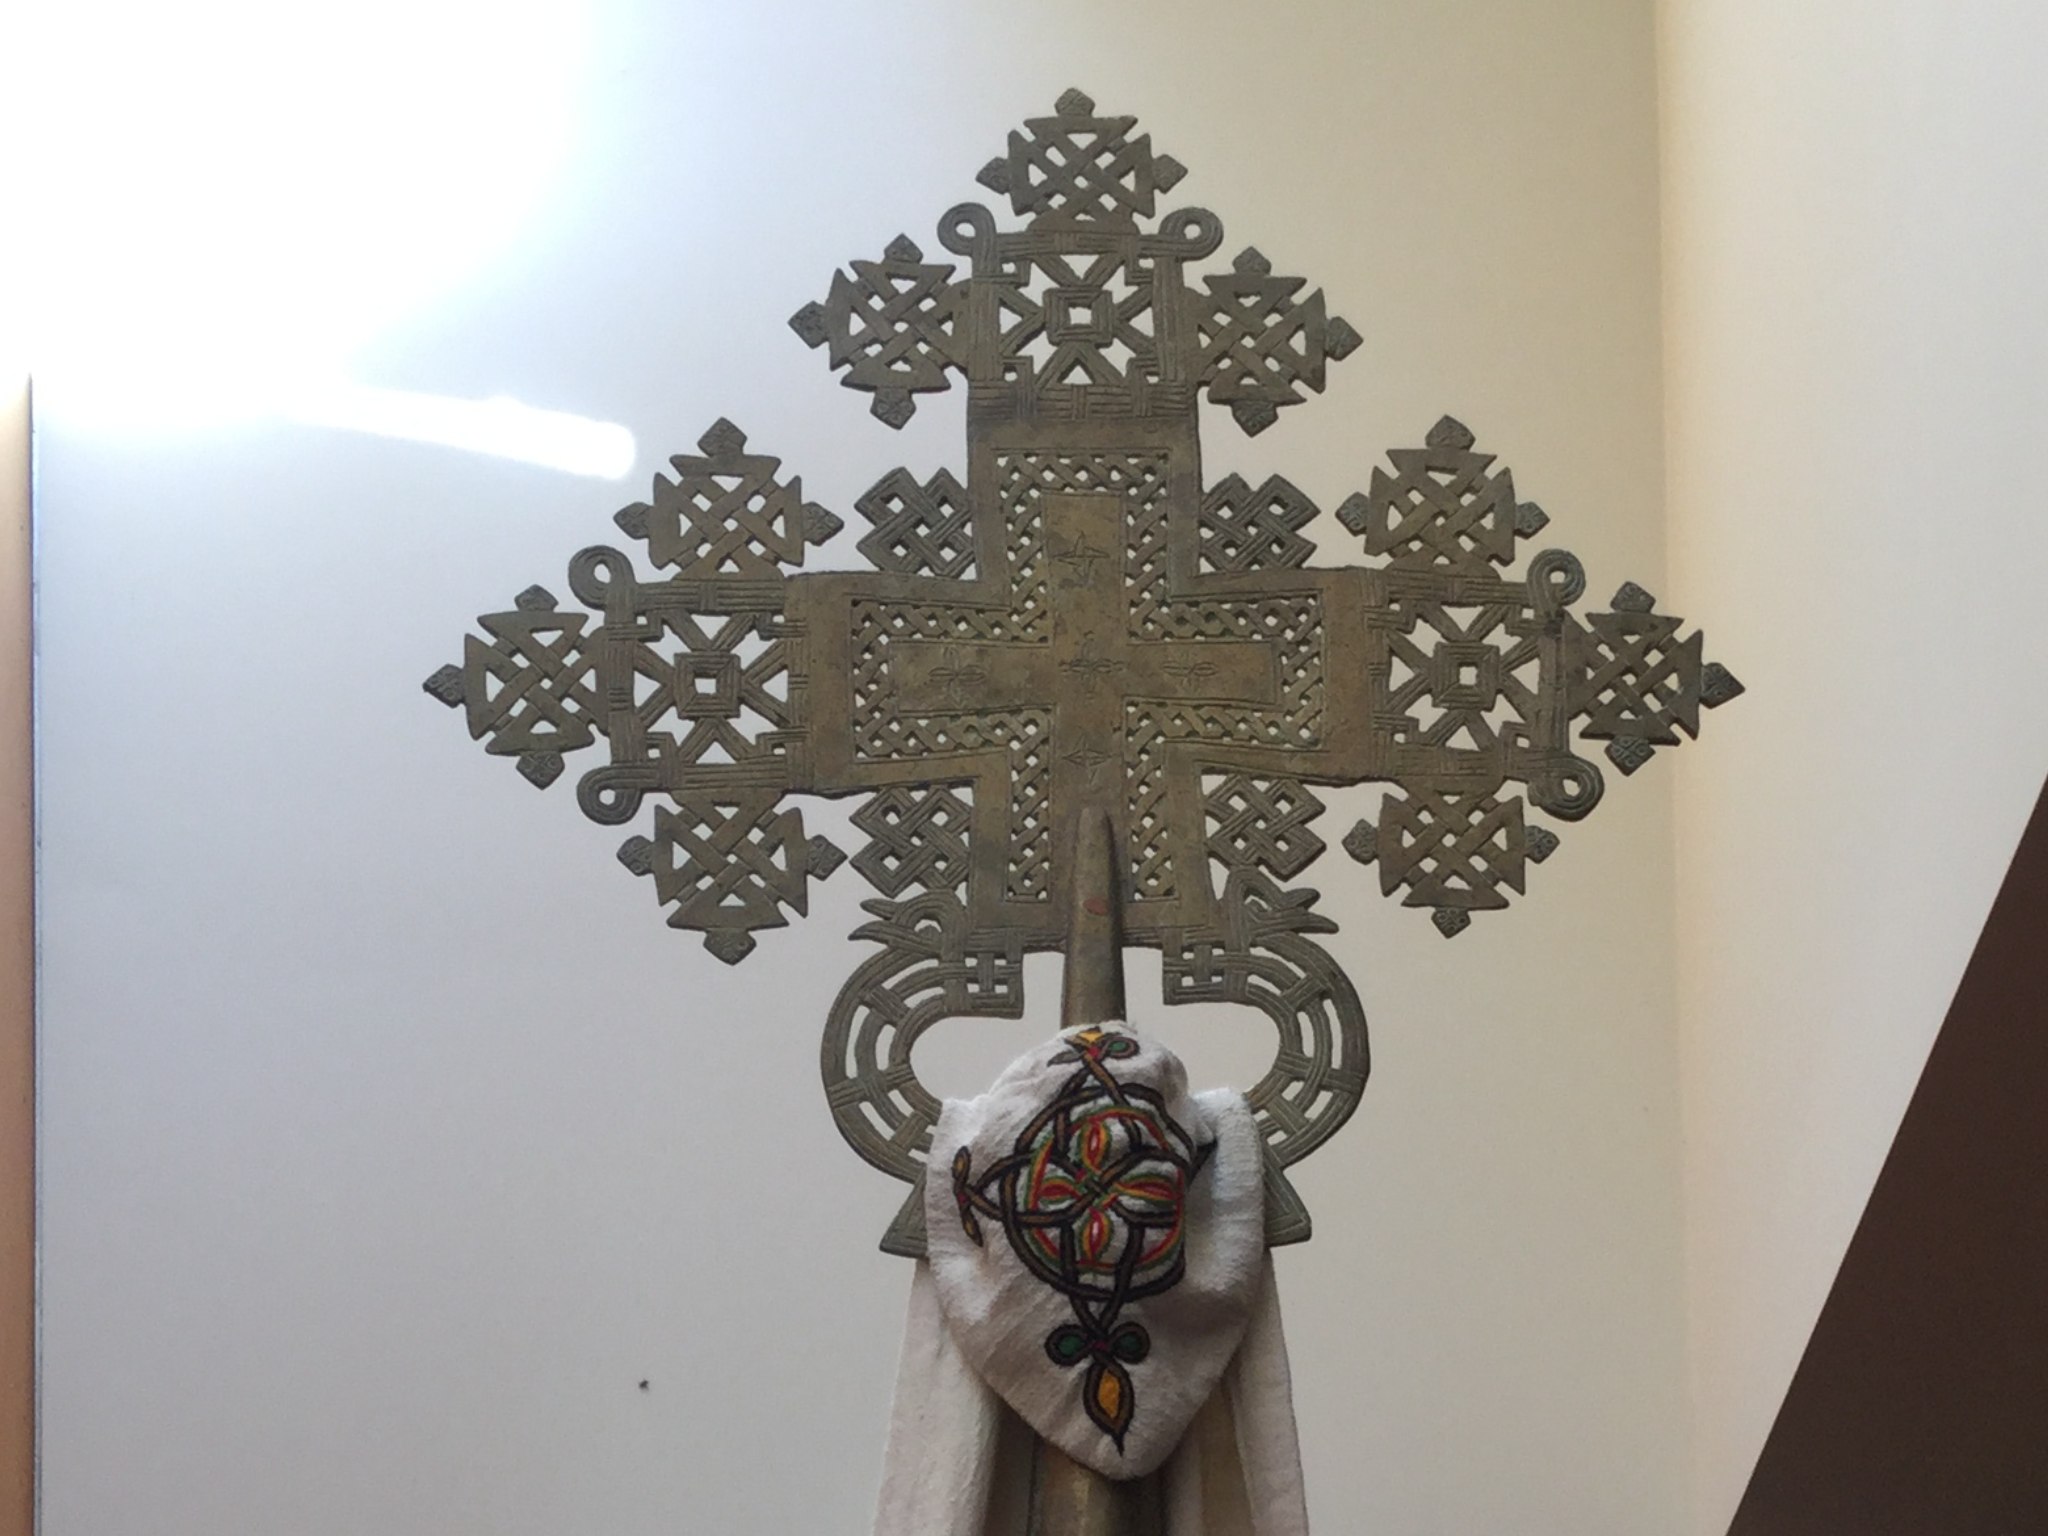 Photograph by Stephen Burns. Ethiopian cross in the chapel of the CTM.